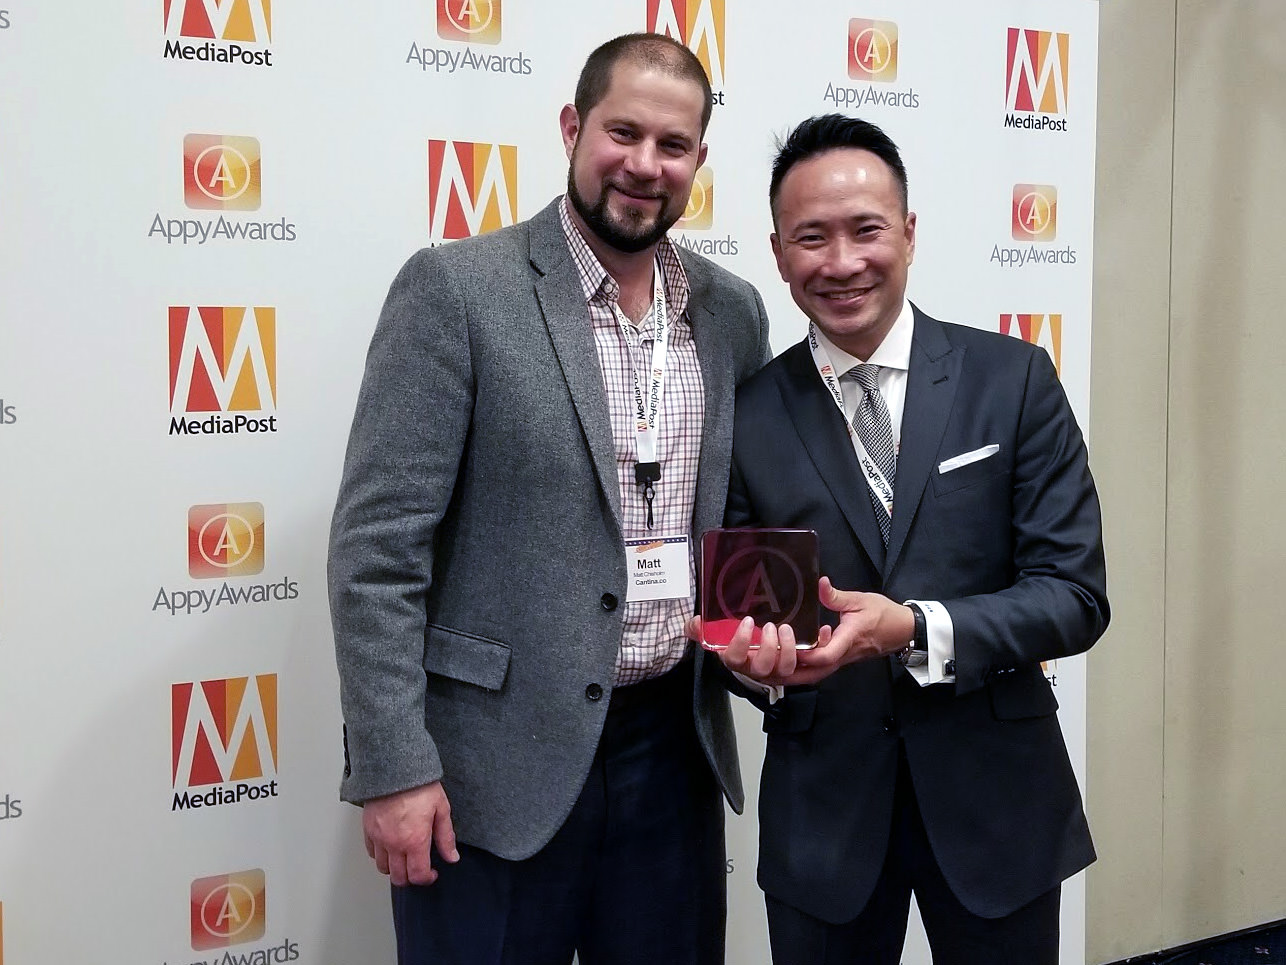 Photo of Matt Chisholm, CEO at Cantina and David Nguyen, Director of Mobile Strategy & Product at Putnam Investment